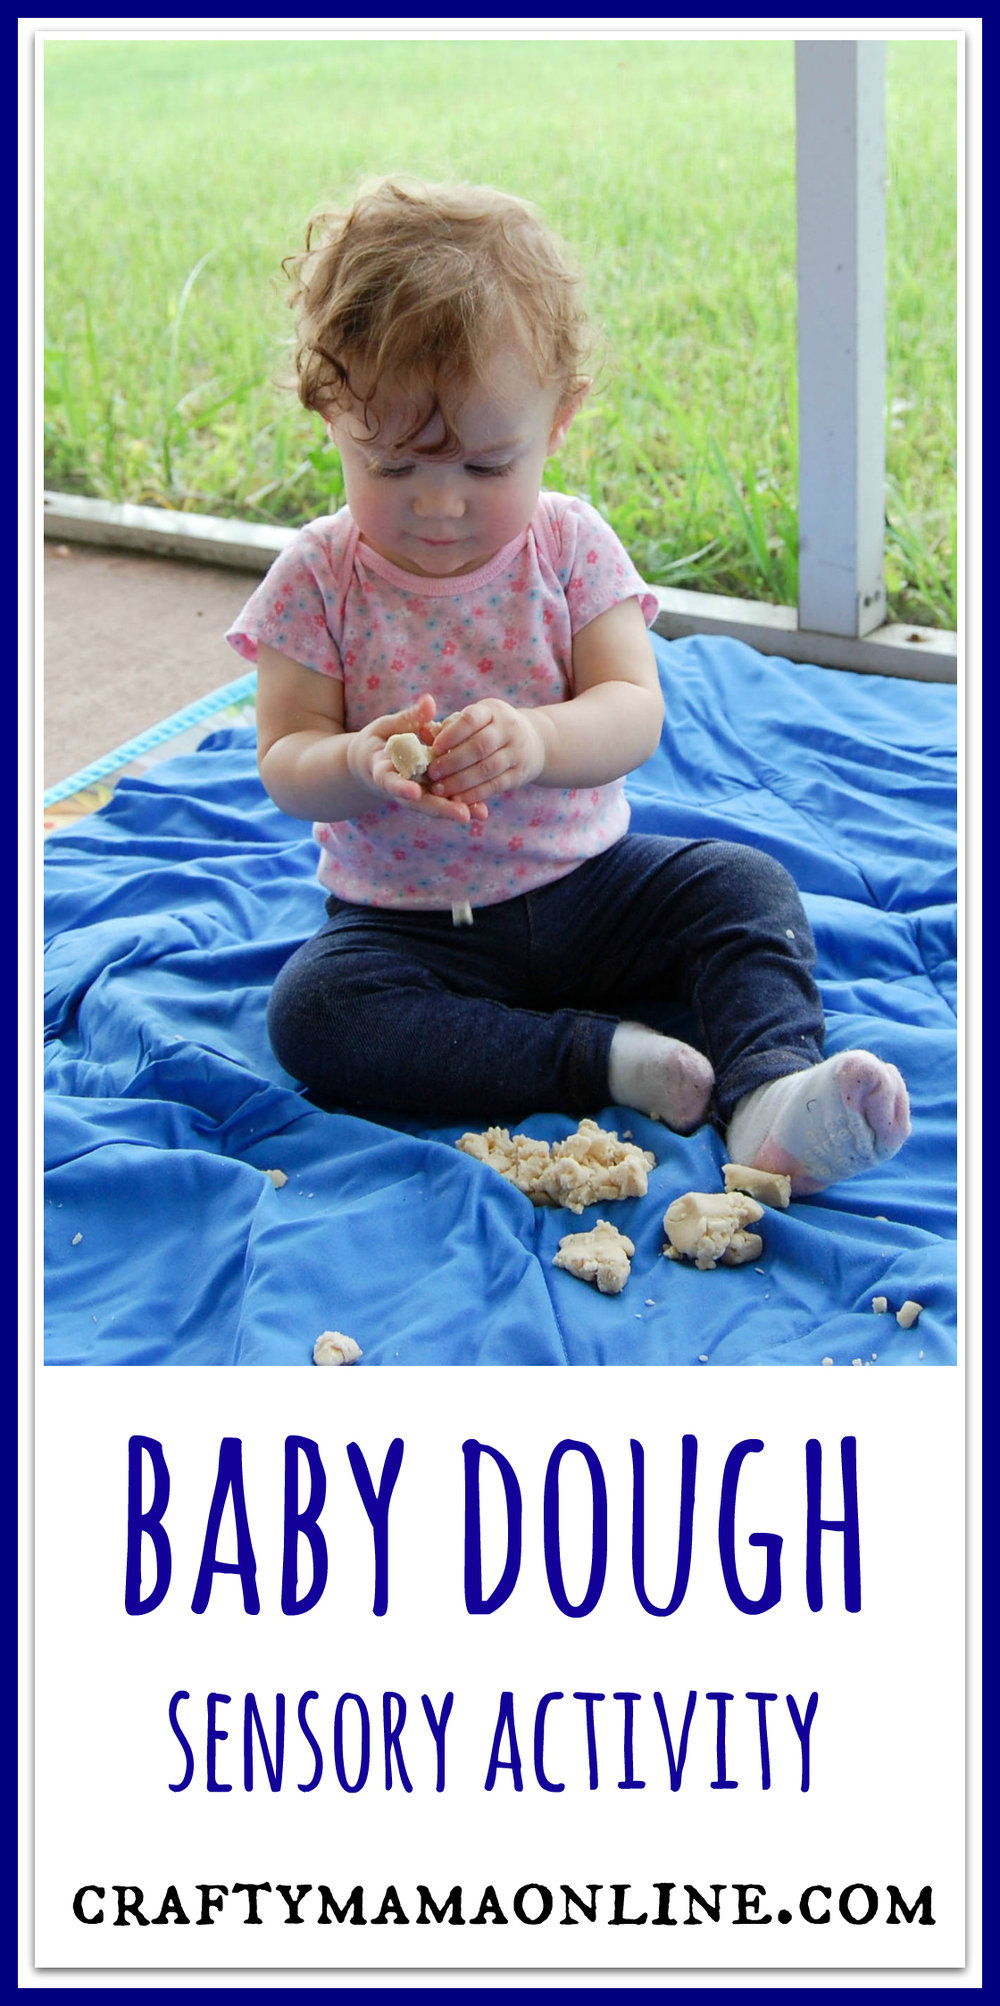 Baby Dough Sensory Activity